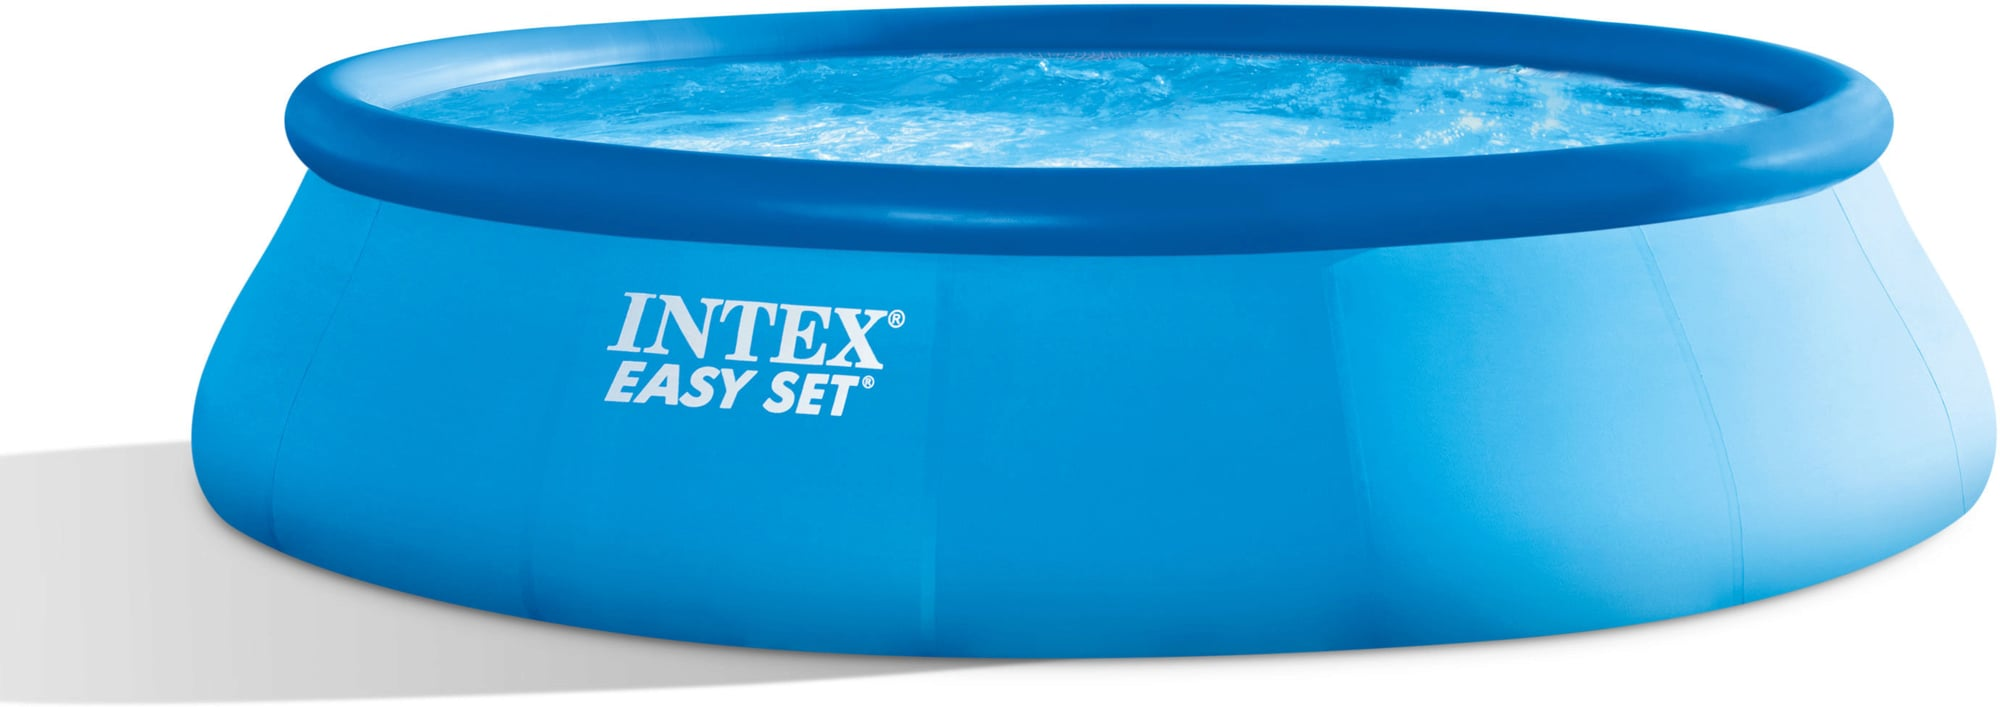 Wärmepumpe Pool Undicht Intex Easy Pool Ø 457 X 107 Cm